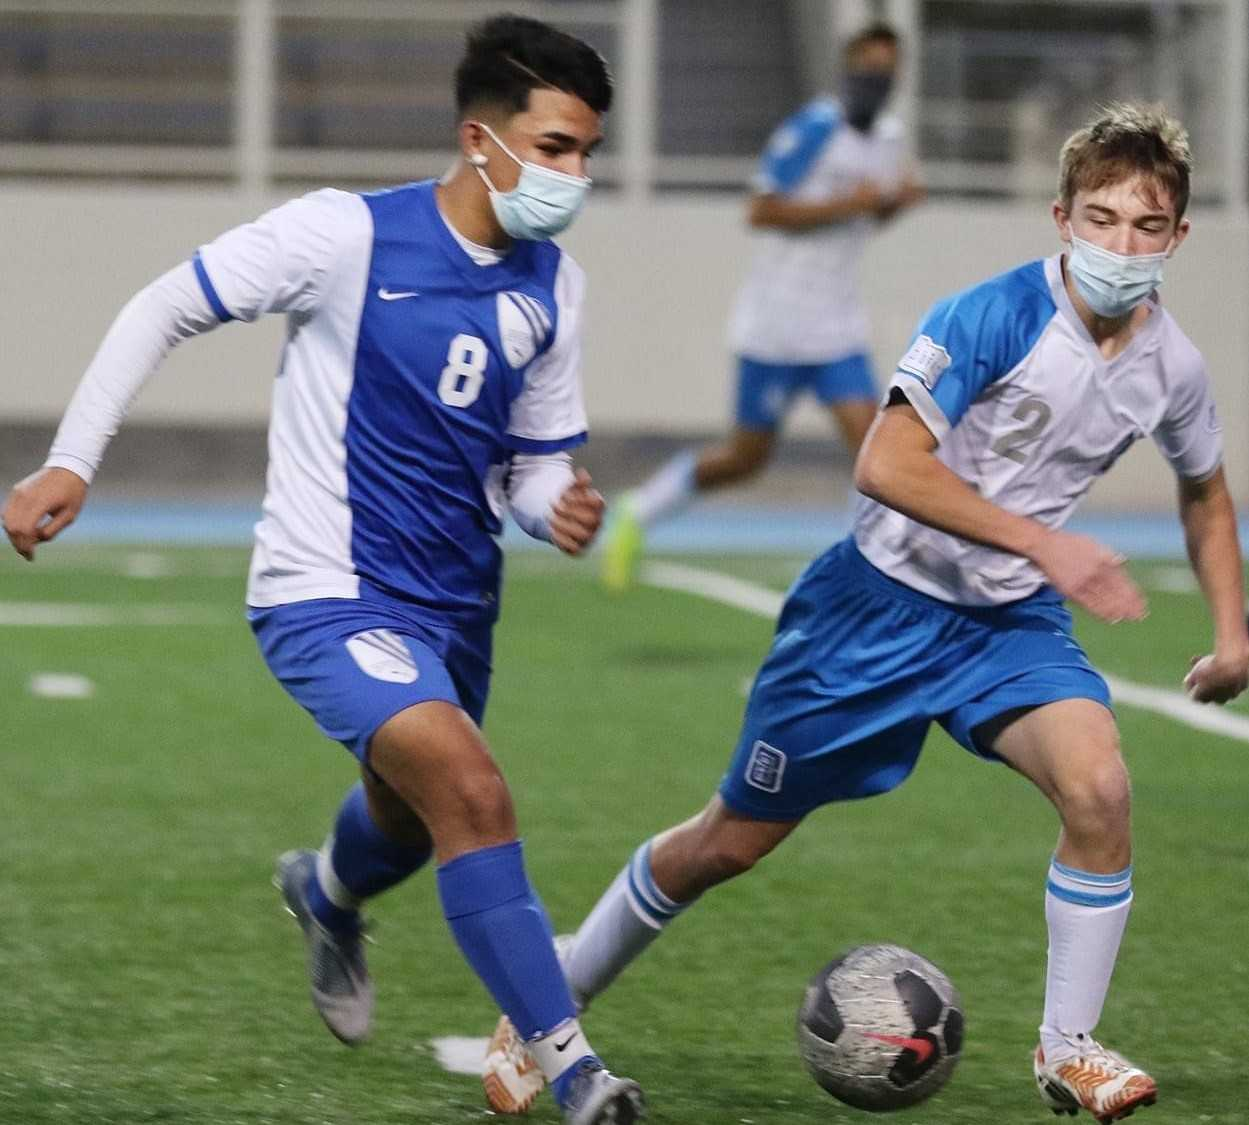 South Medford's Eloy Saucedo (8) works against pressure from Hidden Valley's Jake Saunders (2). (Photo by Tom Lavine)